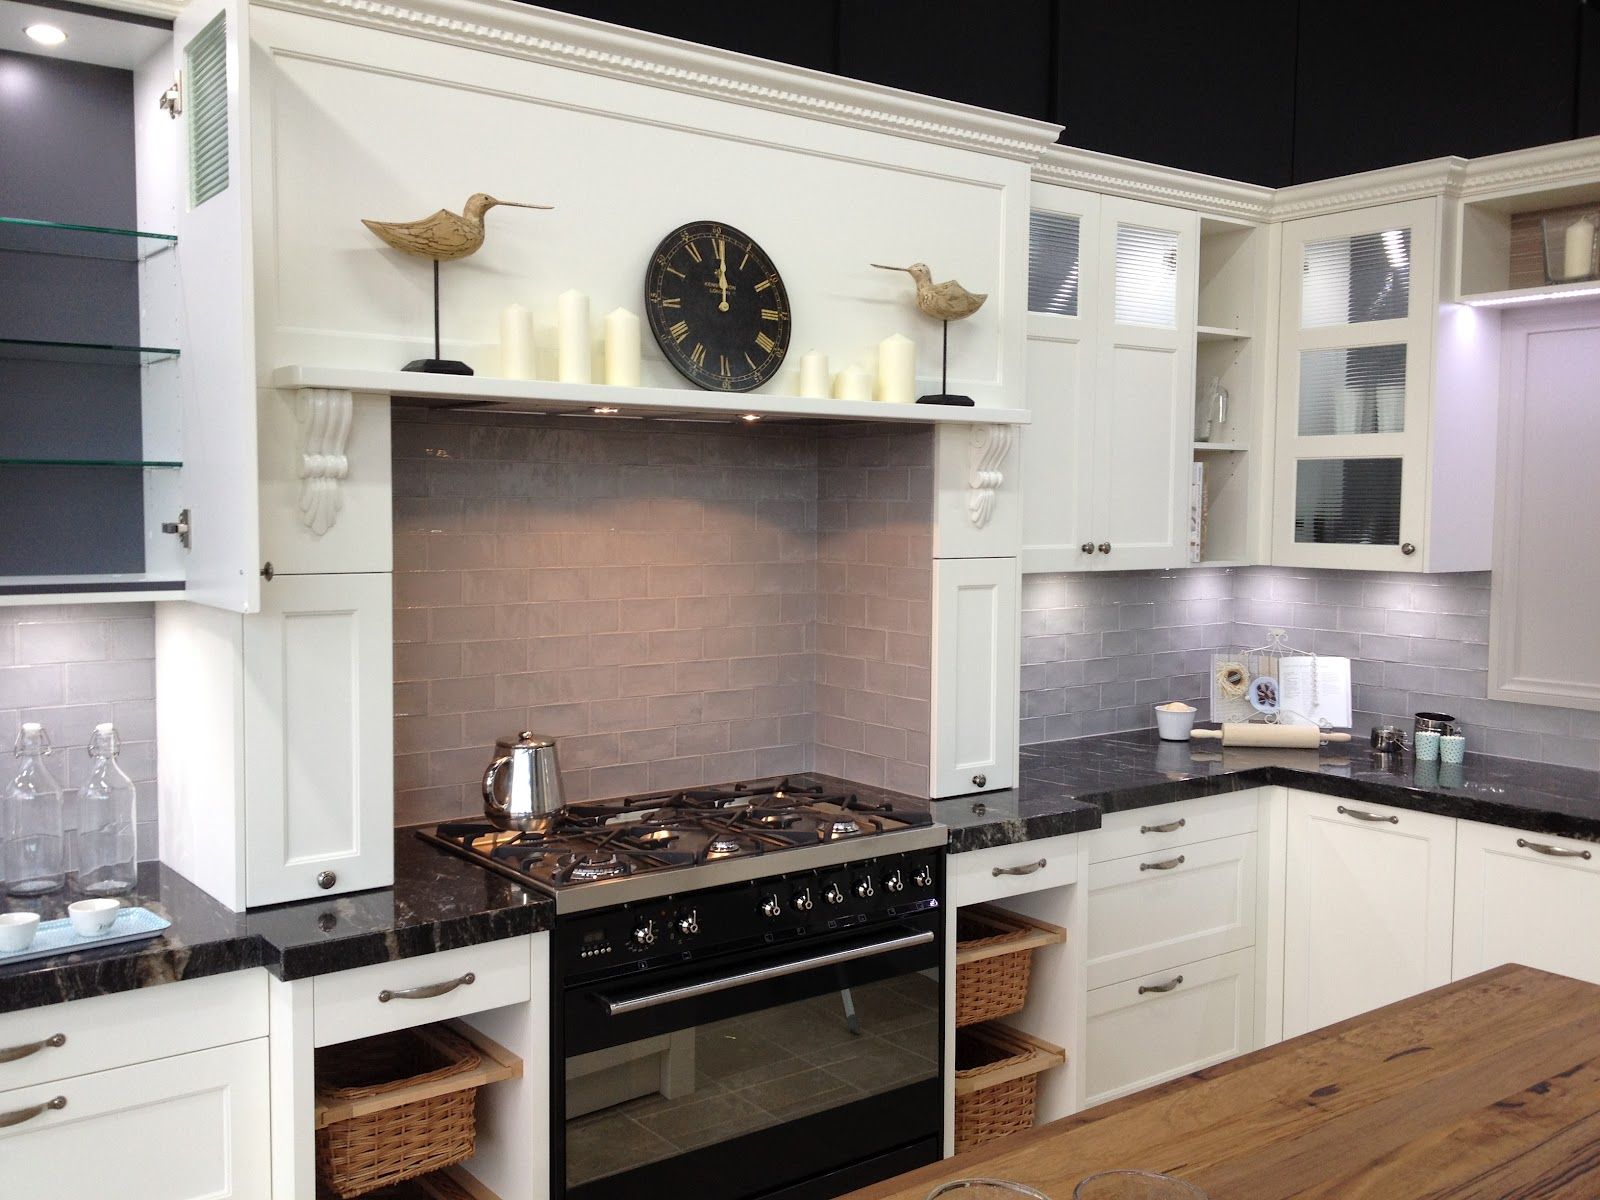 Life and style on a dime lily online magazine 39 s blog for Kitchen remodel ideas on a dime